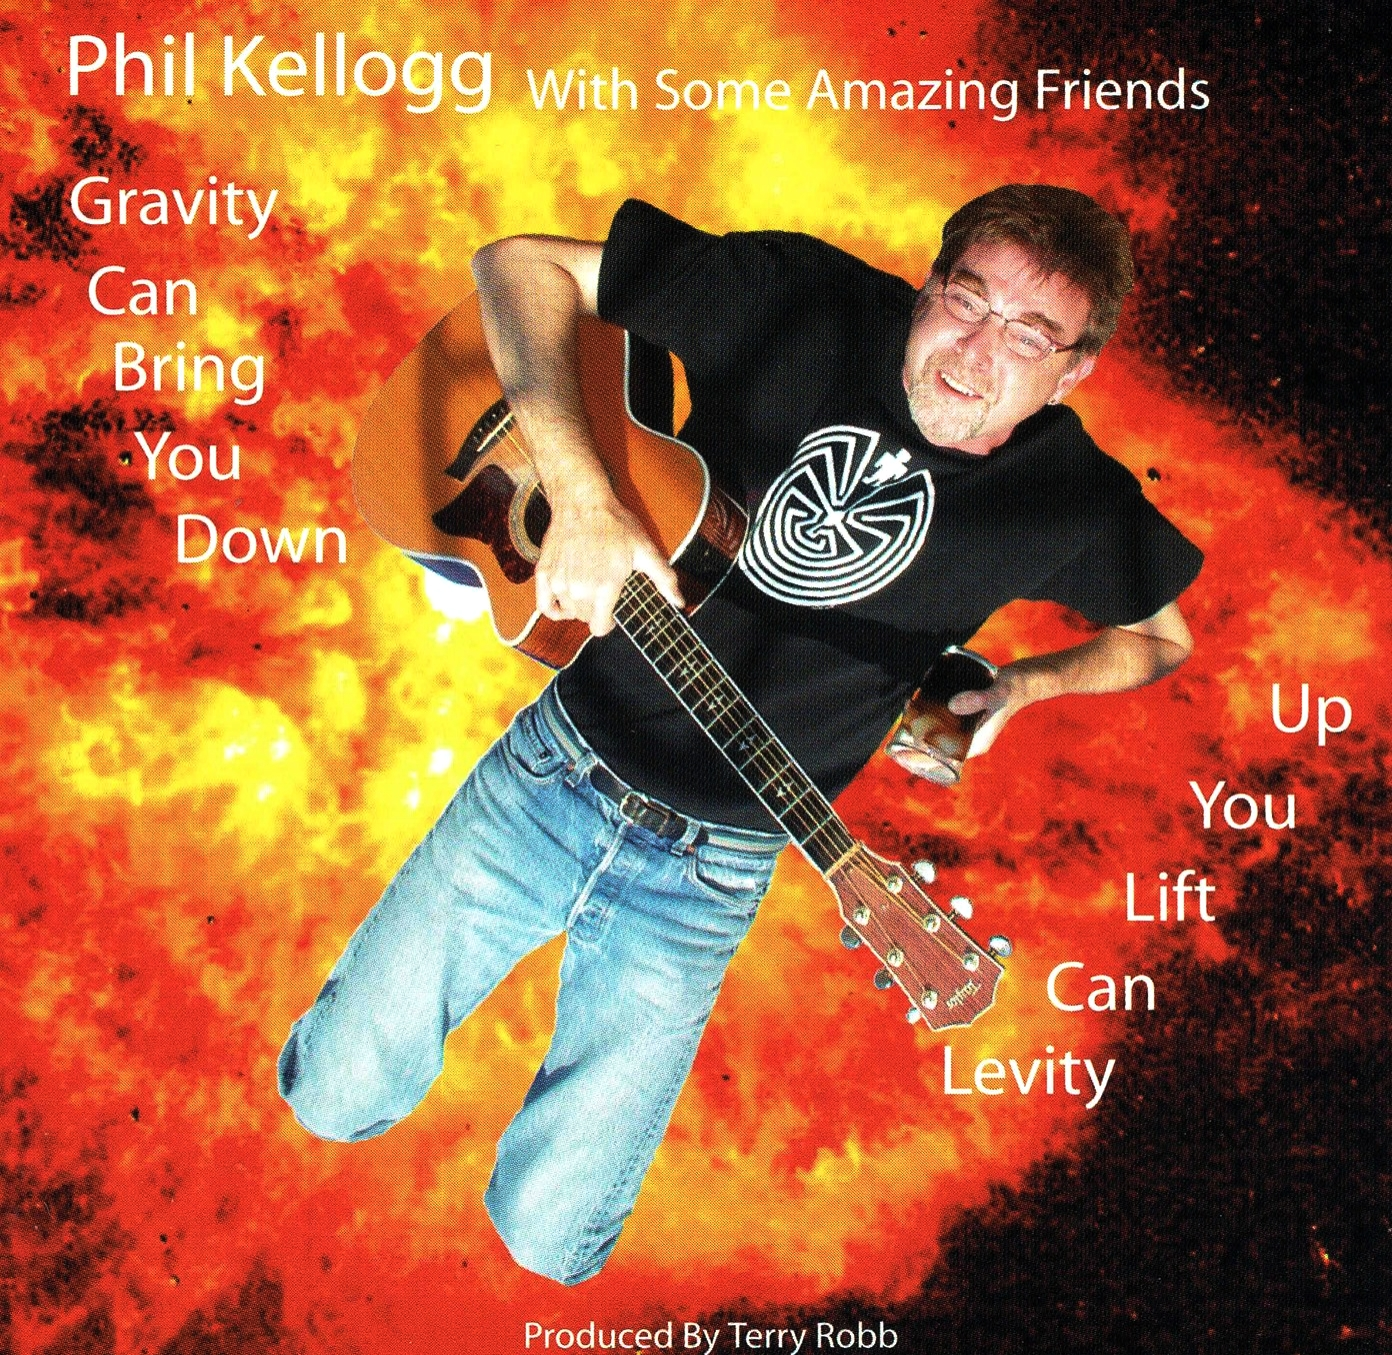 Phil Kellog, Gravity Can Bring You Down